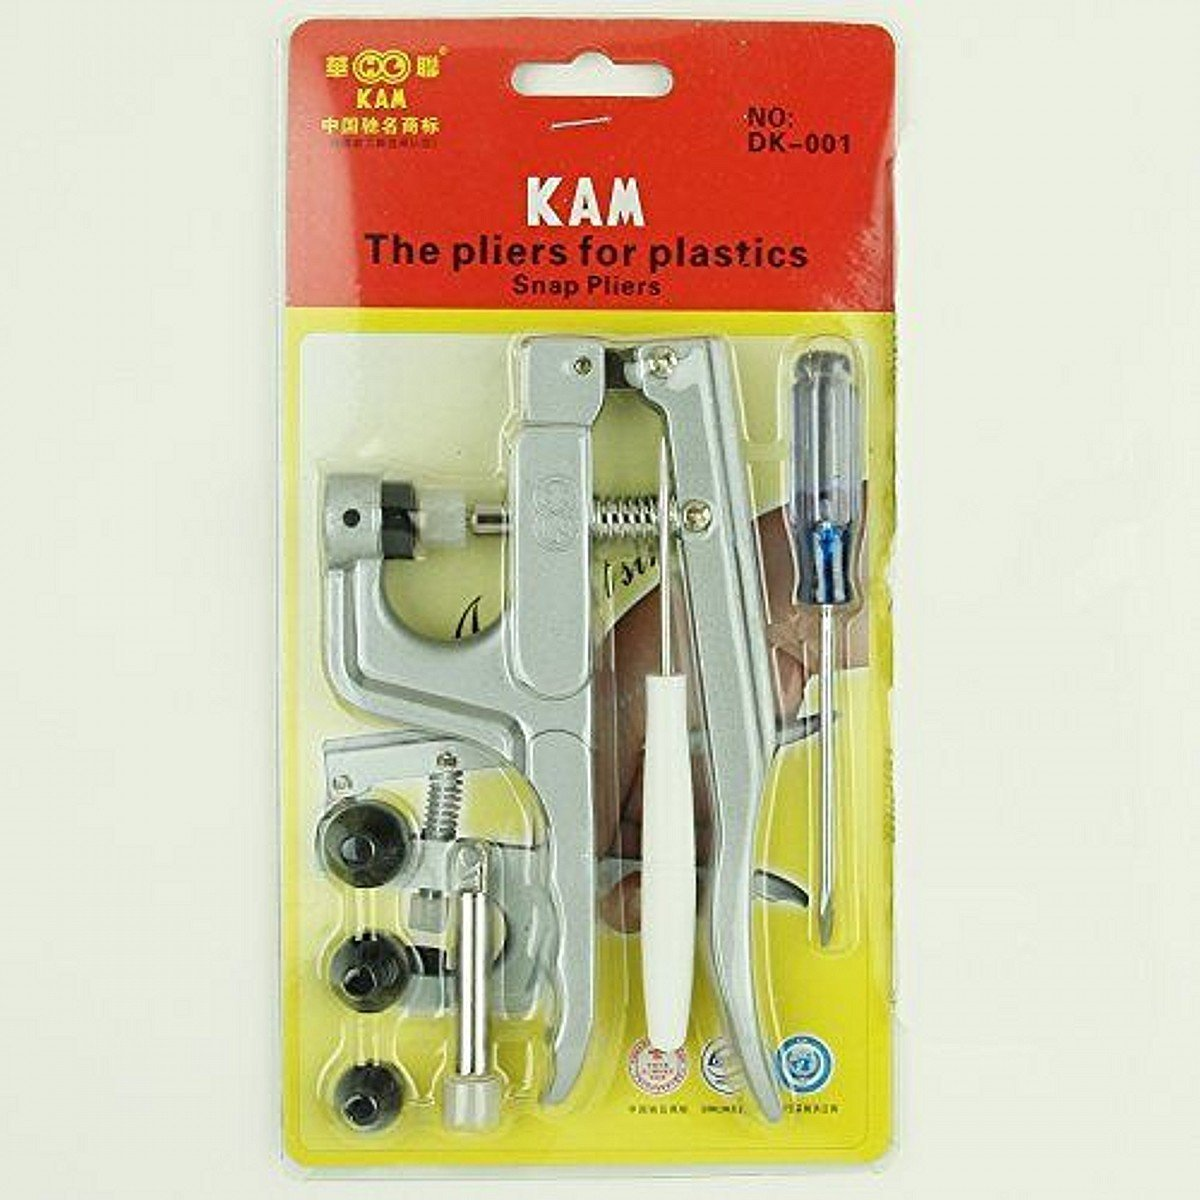 CHENGYIDA KAM Snap Pliers For Size 16/20/24 T3/T5/T8 Resin Plastic Poppers/Snap Fasteners